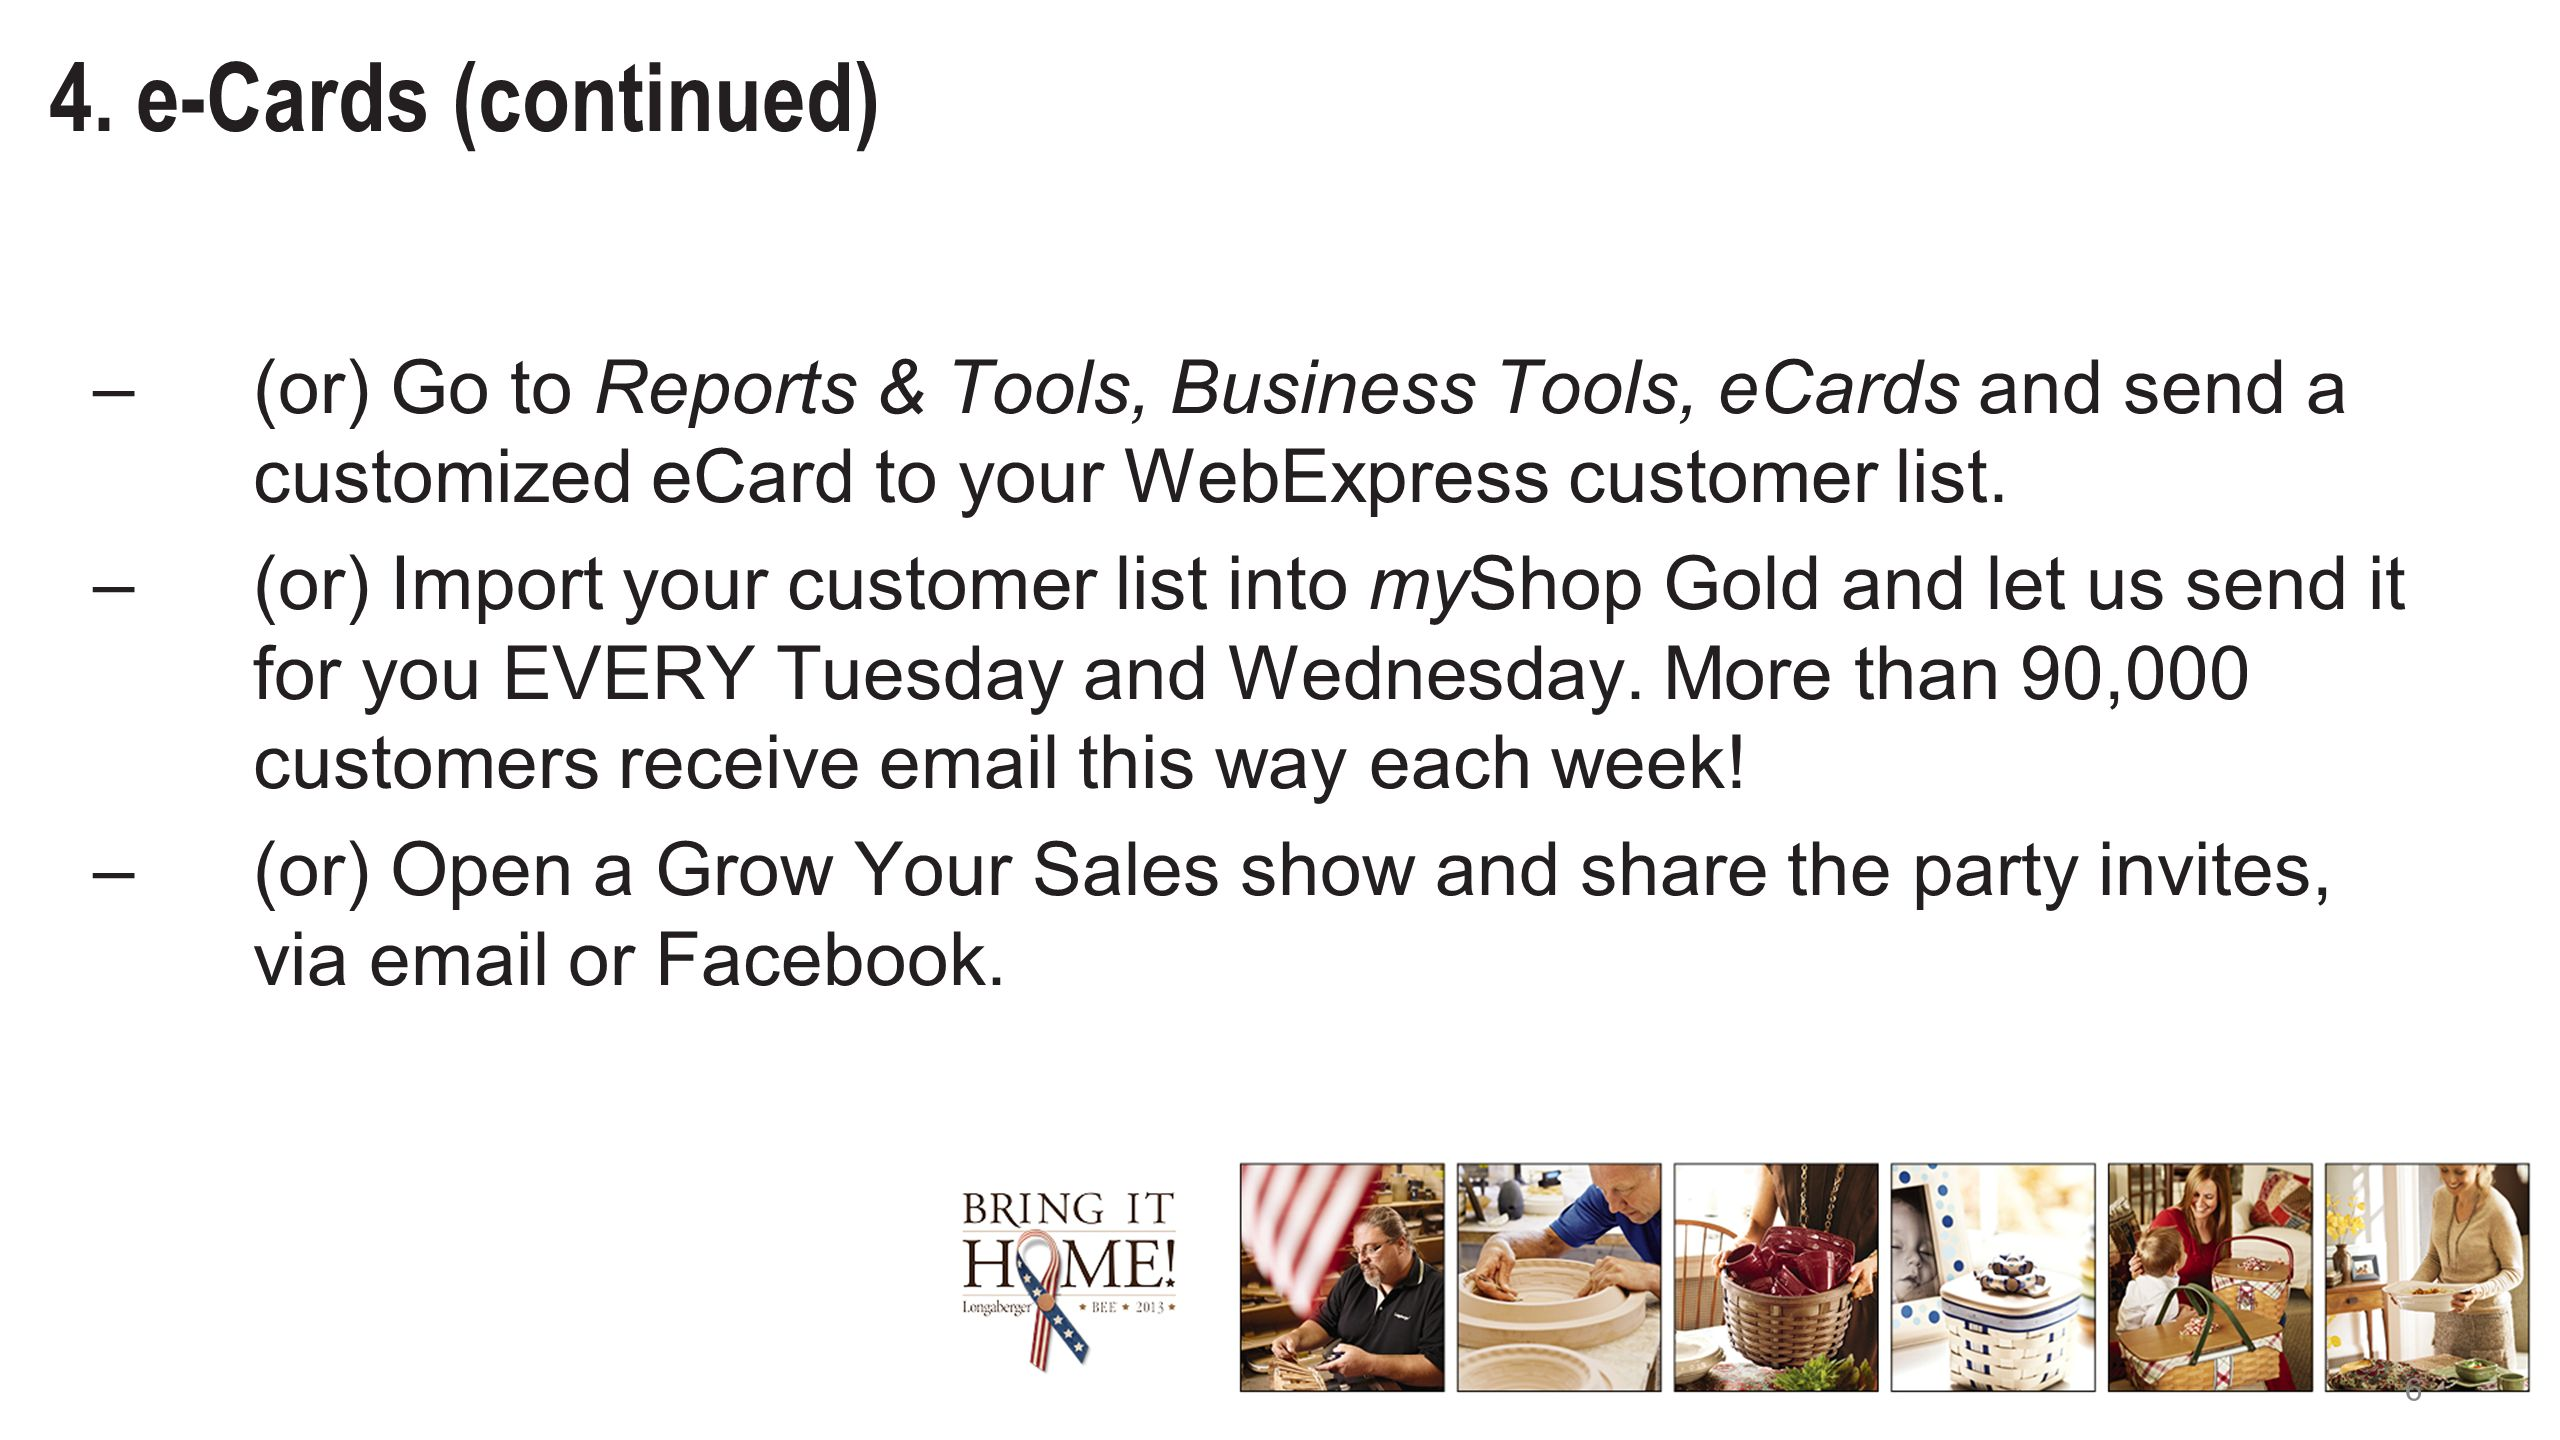 6 4. e-Cards (continued) –(or) Go to Reports & Tools, Business Tools, eCards and send a customized eCard to your WebExpress customer list. –(or) Impor